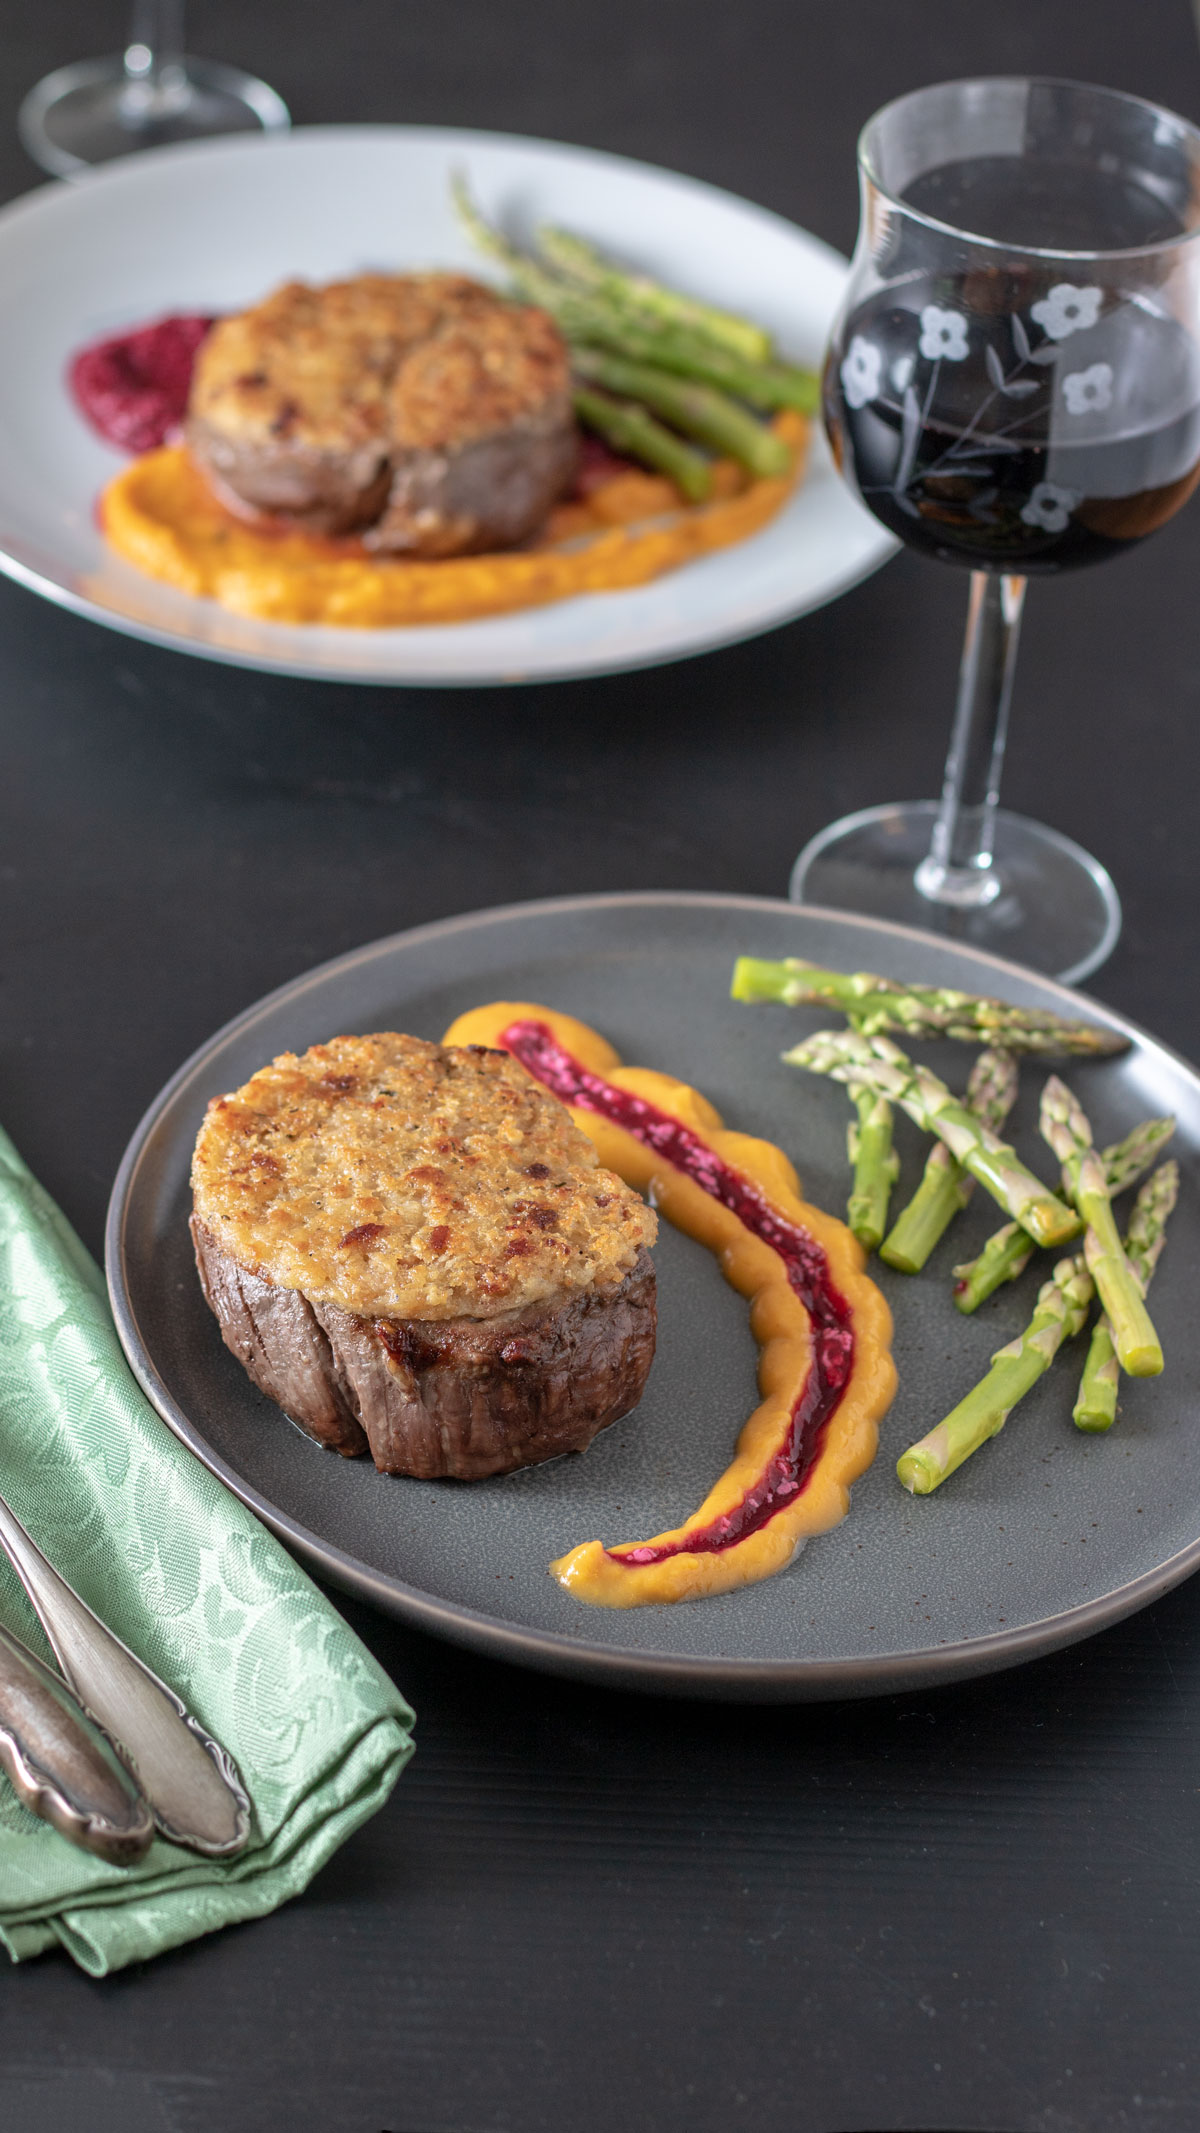 Horseradish crusted beef filet on gray plate with scond dish in background.